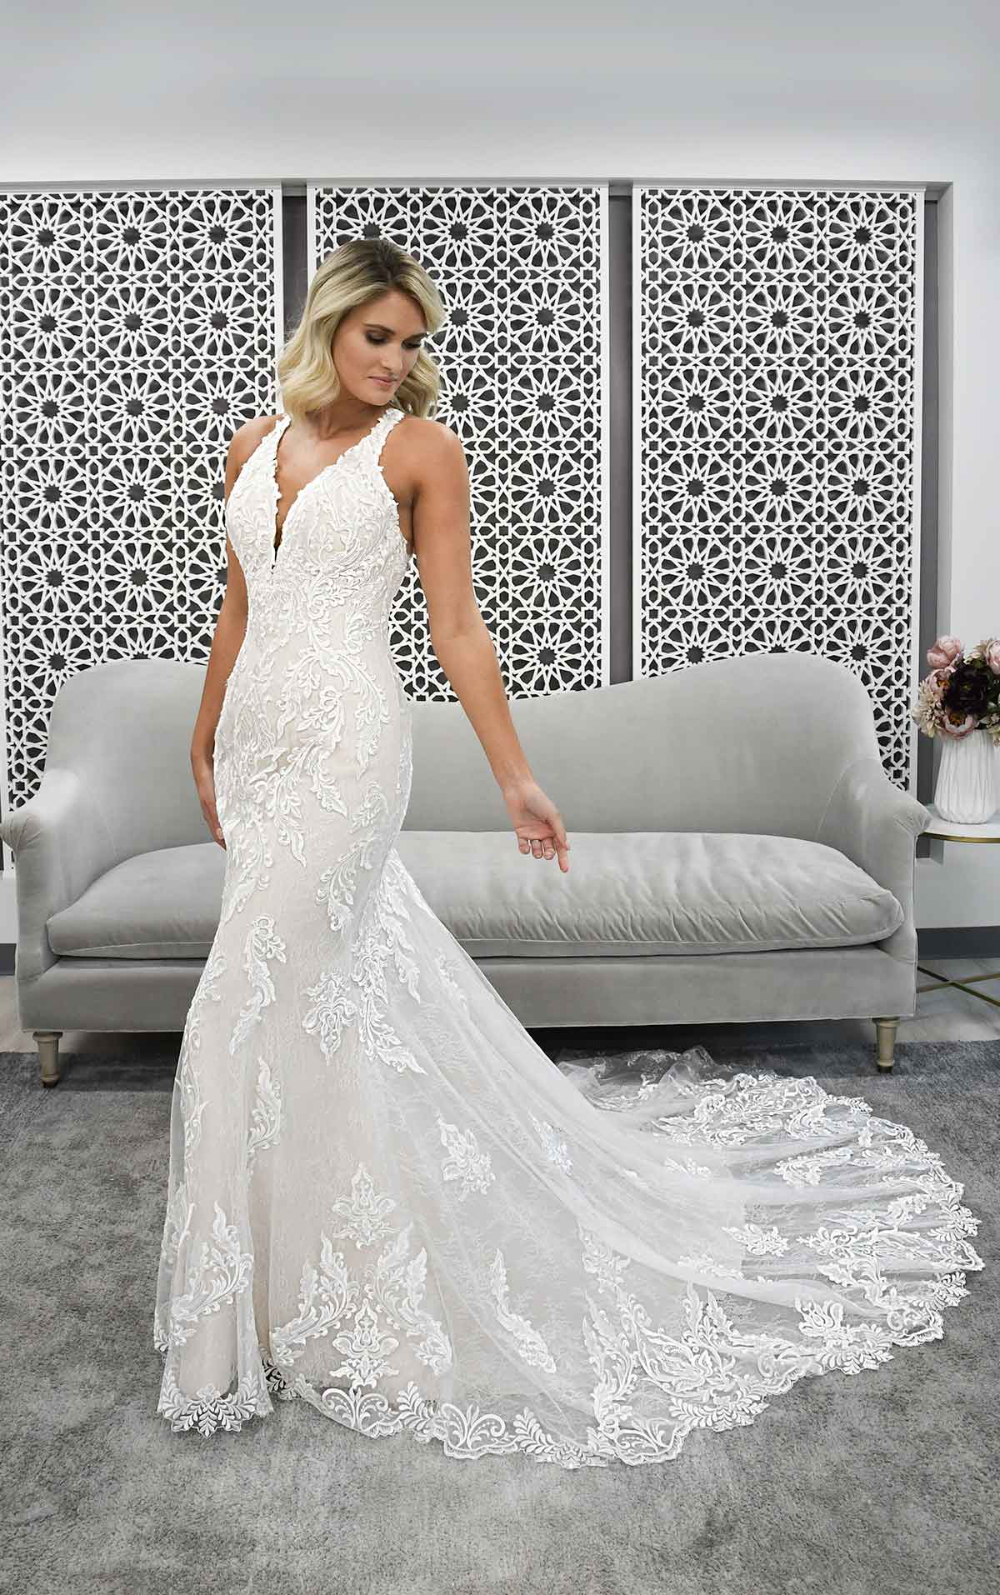 Lace Halter Wedding Dress With Back Detail Stella York Wedding Dresses York Wedding Dress Fitted Lace Wedding Dress Stella York Bridal [ 1595 x 1000 Pixel ]